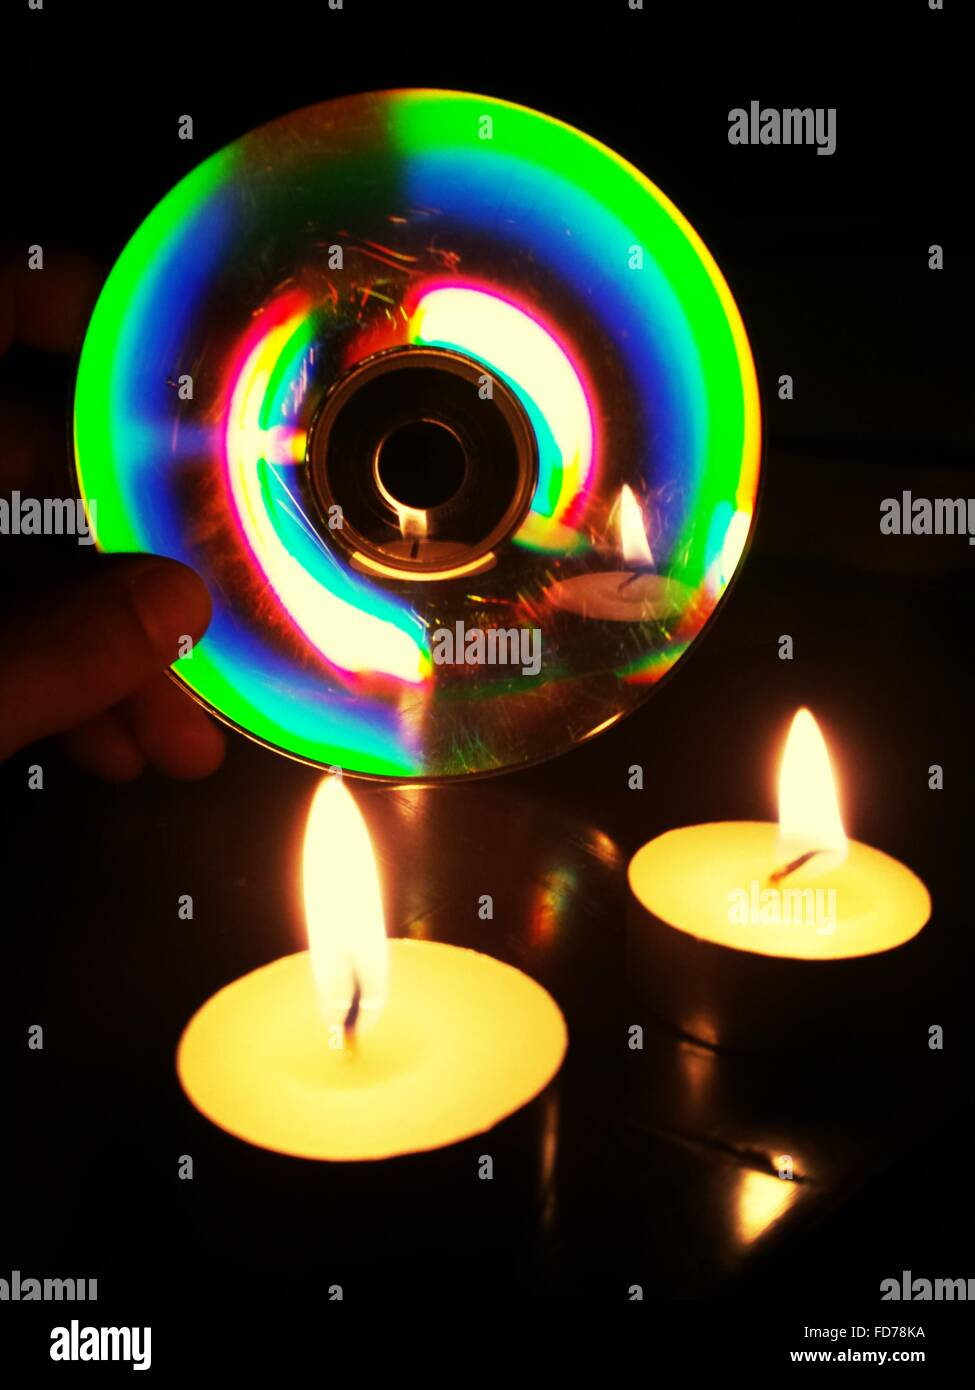 Candlelight Reflecting In Compact Disc - Stock Image